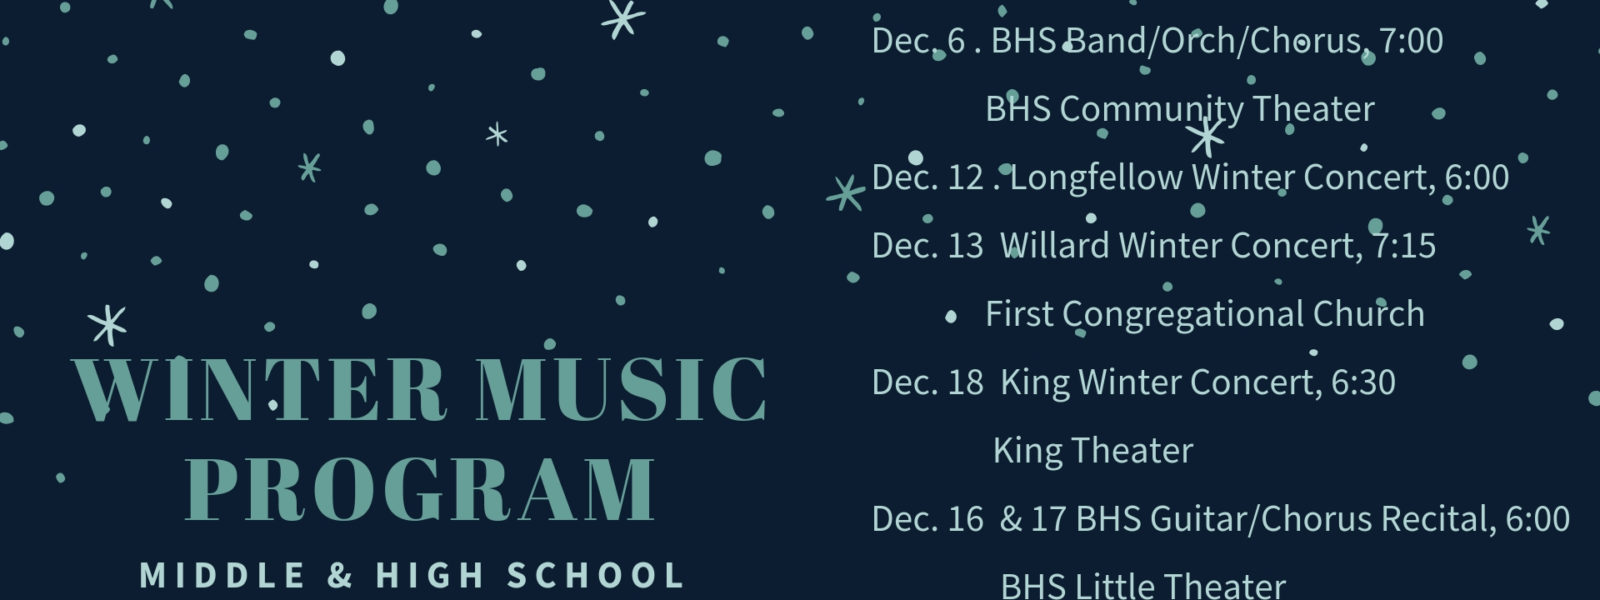 Winter Music Program – Upcoming Middle & High School Performances